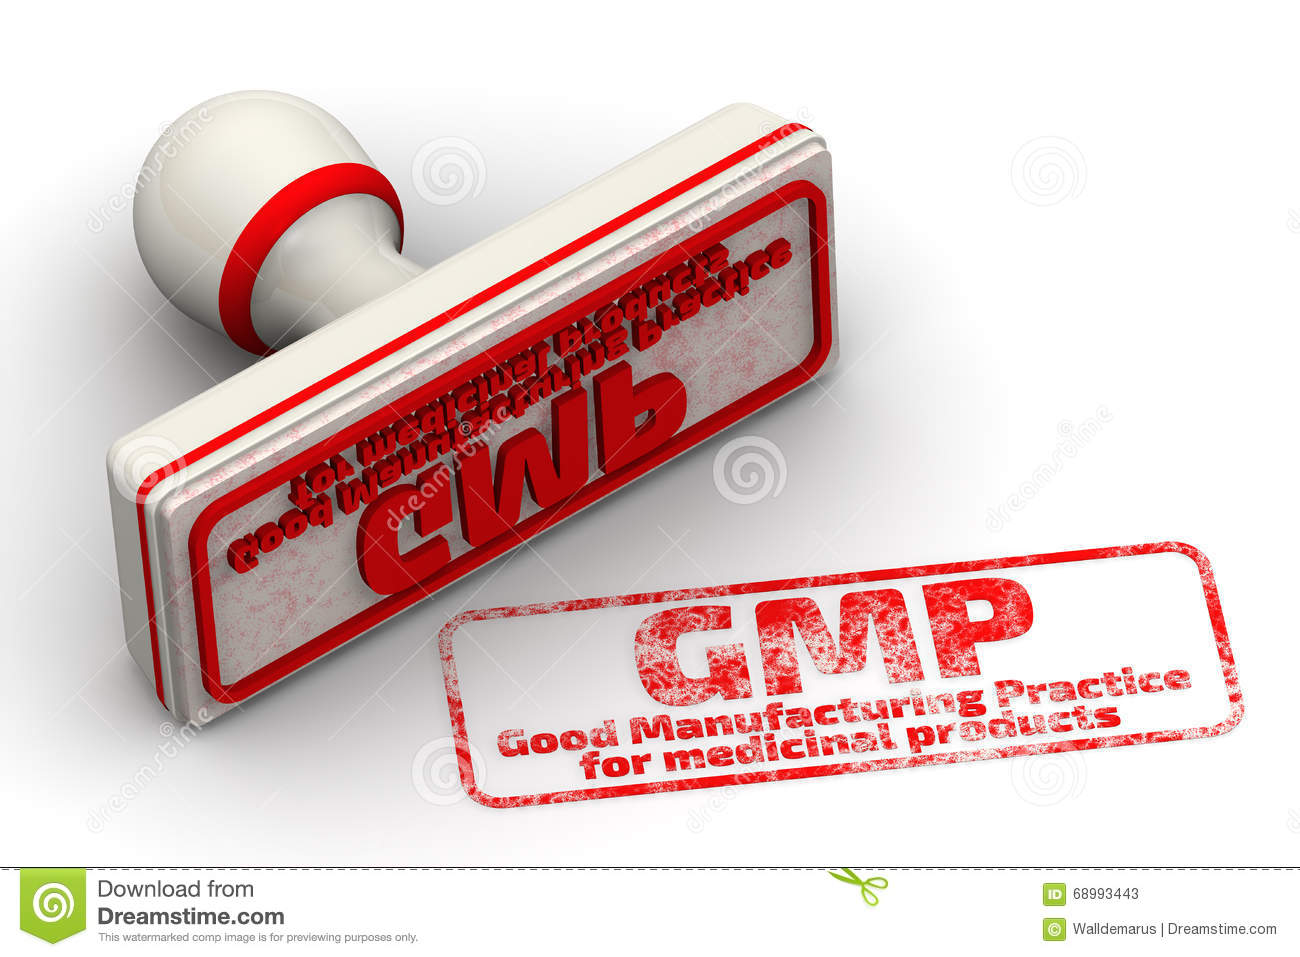 how to get good manufacturing practices gmp certificate